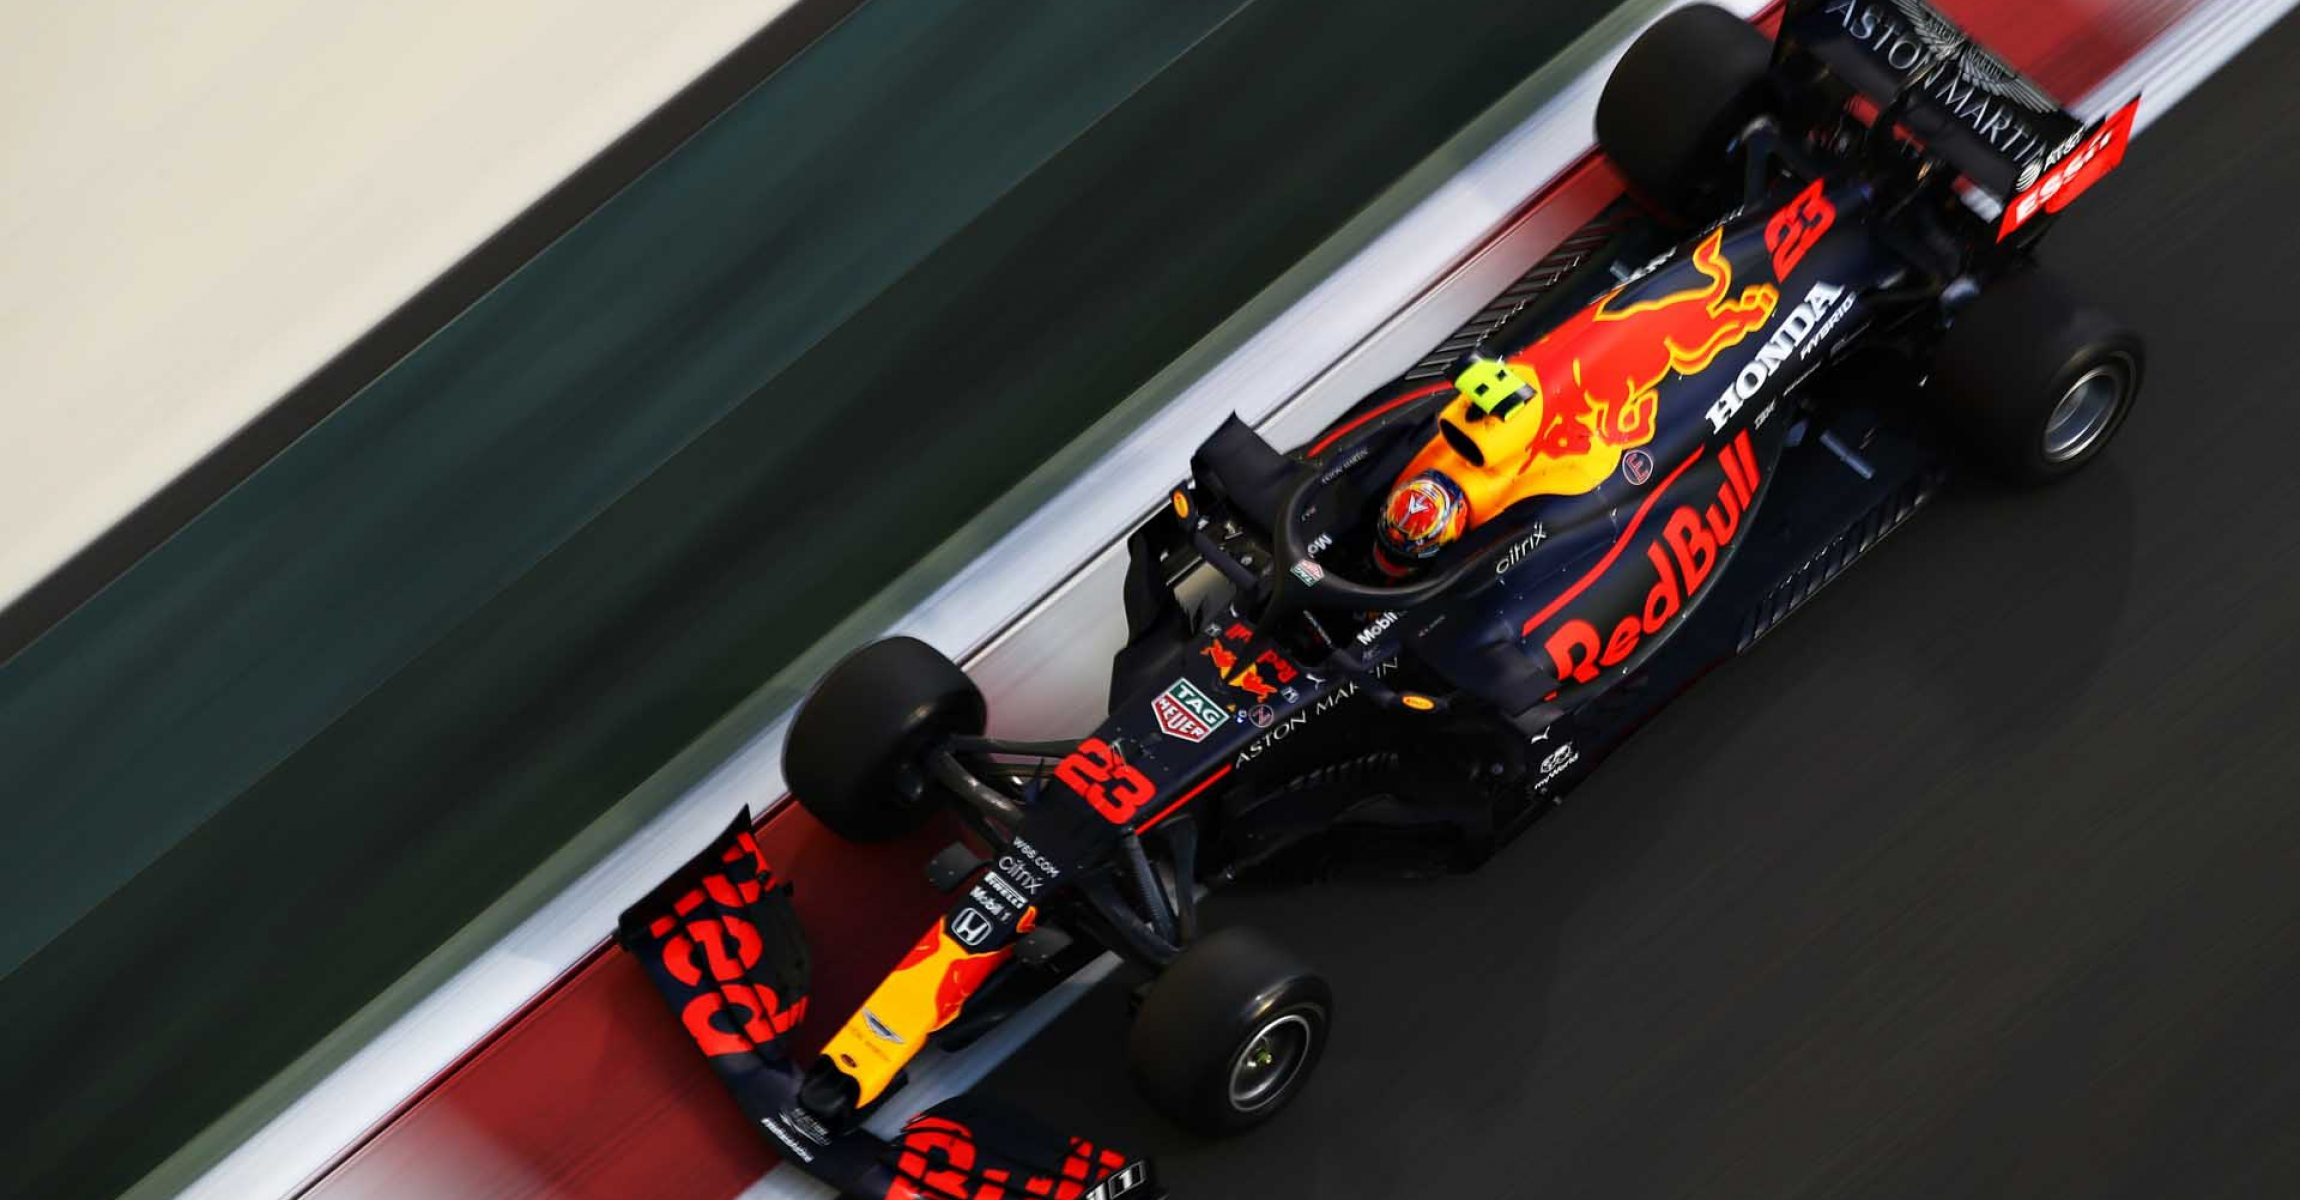 ABU DHABI, UNITED ARAB EMIRATES - DECEMBER 11: Alexander Albon of Thailand driving the (23) Aston Martin Red Bull Racing RB16 during practice ahead of the F1 Grand Prix of Abu Dhabi at Yas Marina Circuit on December 11, 2020 in Abu Dhabi, United Arab Emirates. (Photo by Mark Thompson/Getty Images)